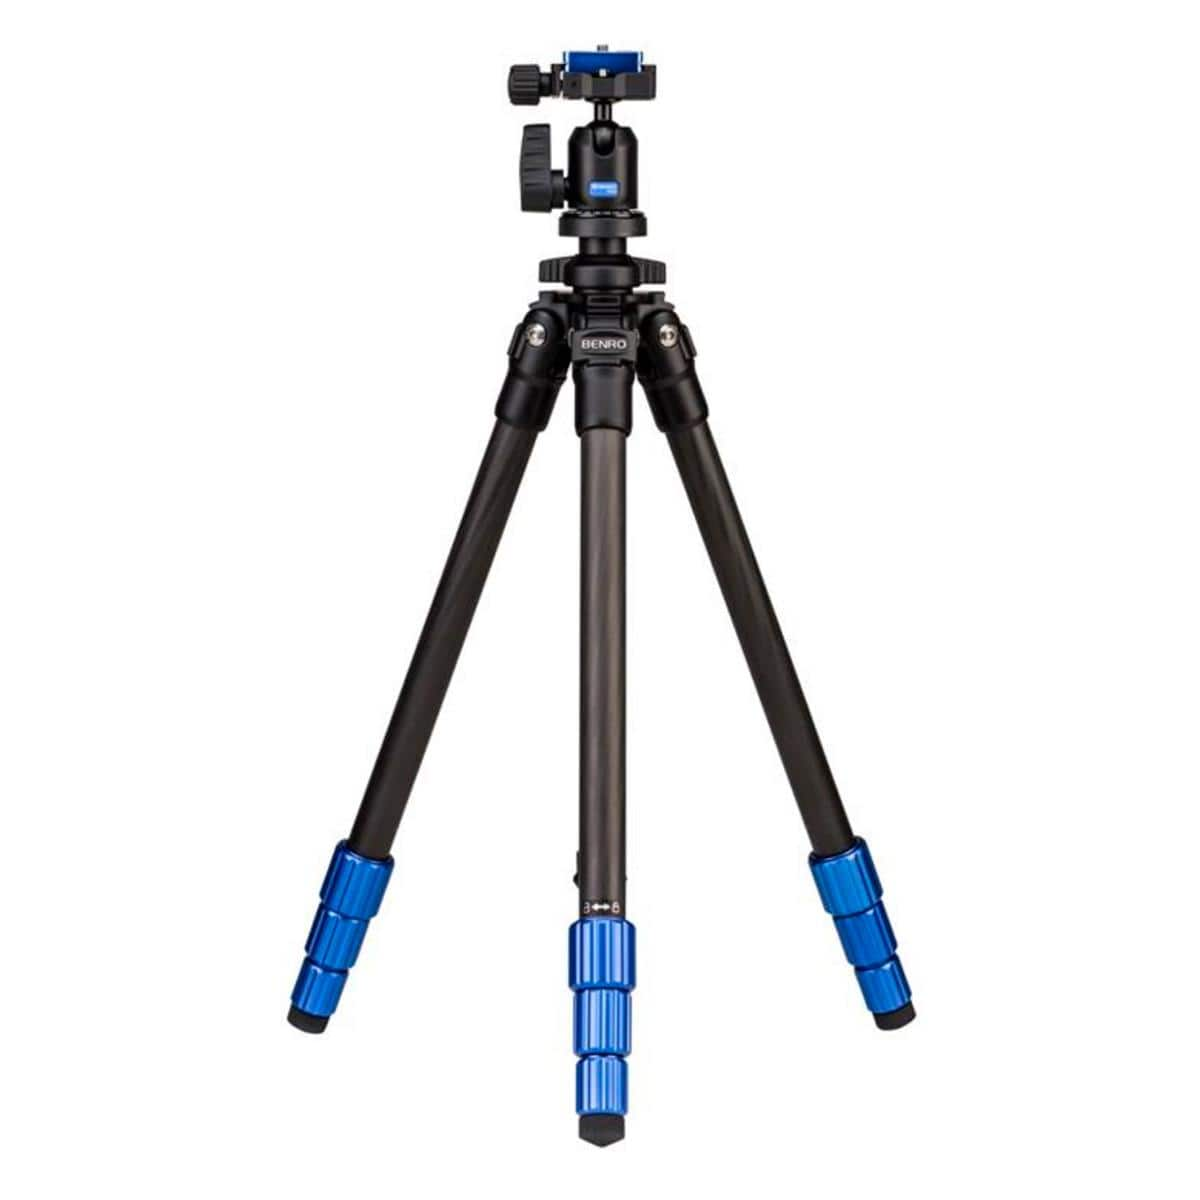 Benro Slim Carbon Fiber Tripod w/ Ball Head $79 + free s/h